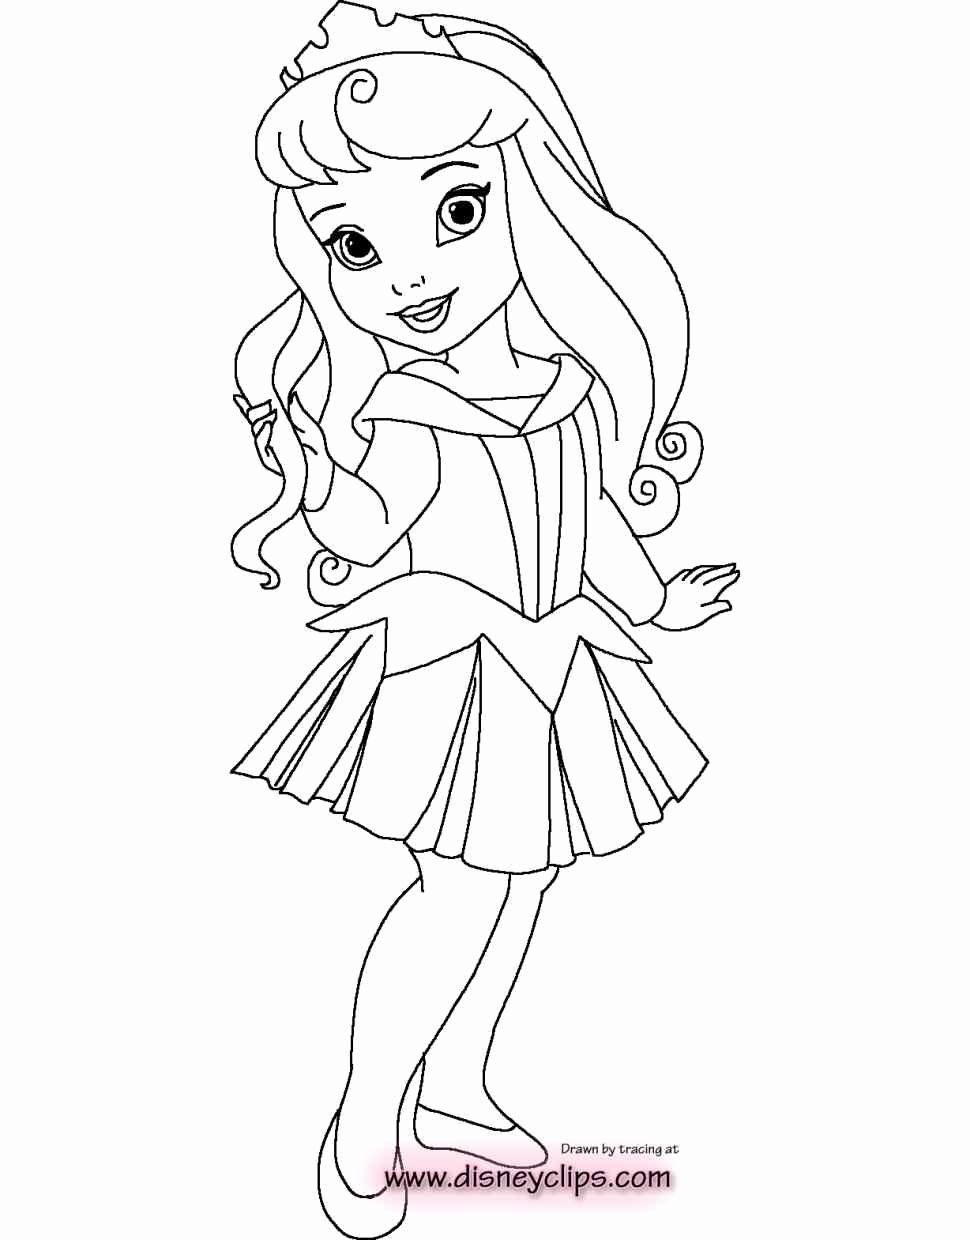 Kids Coloring Pages Disney Babies In 2020 Disney Princess Coloring Pages Mermaid Coloring Pages Belle Coloring Pages